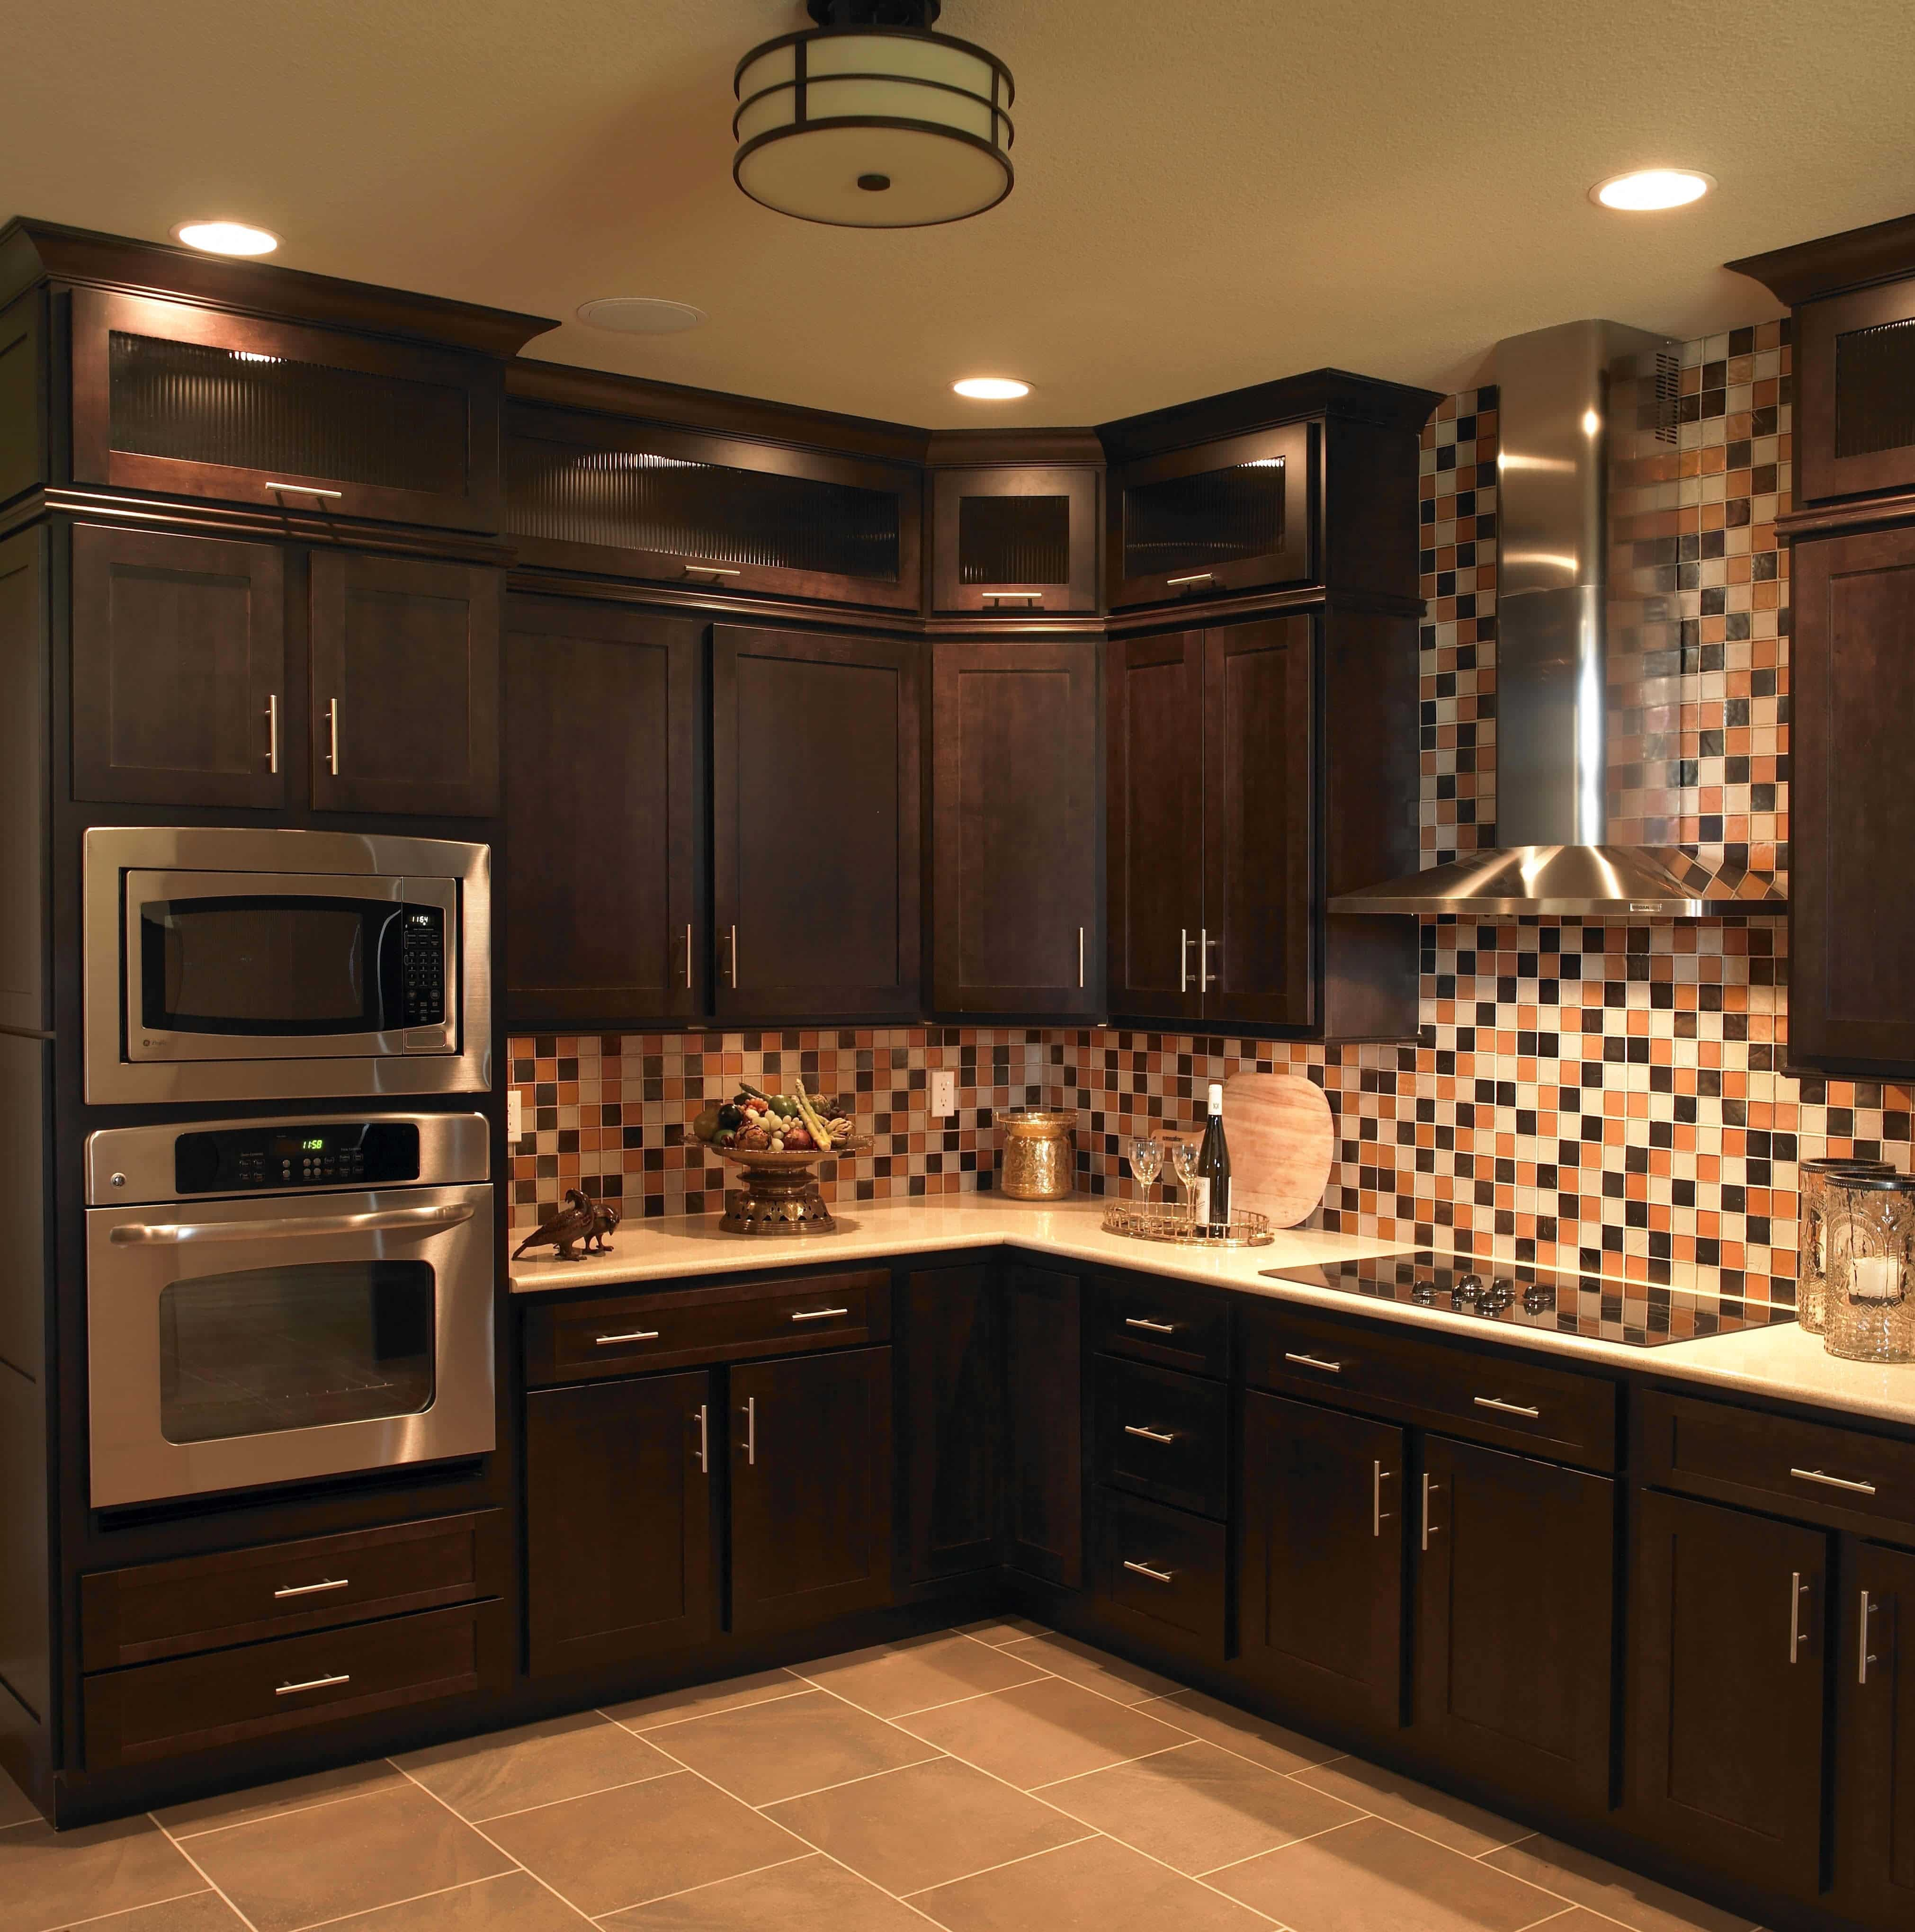 products kitchen cabinets cincinnati Cabinetry